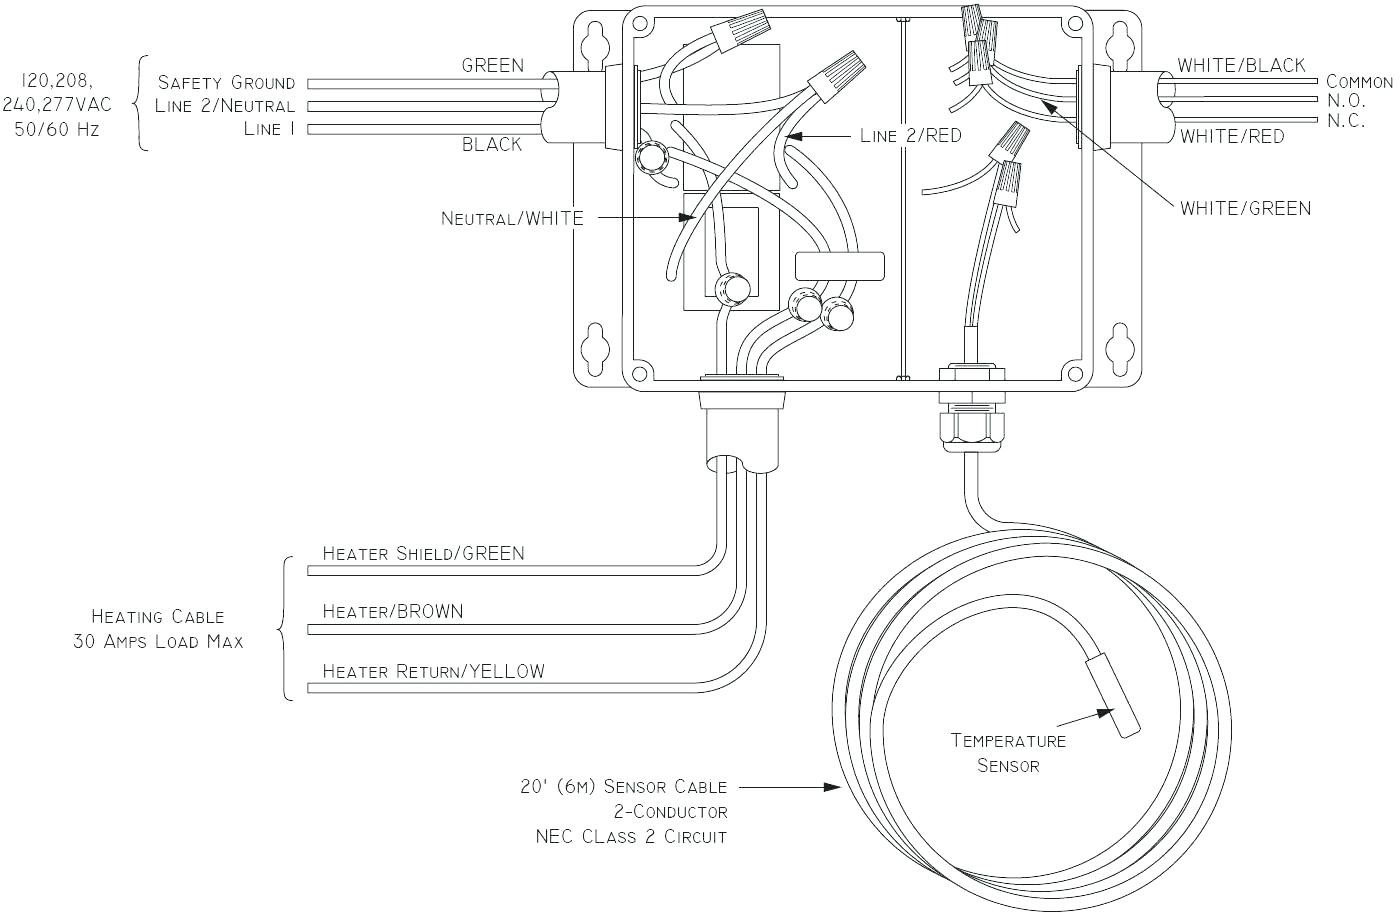 double pole baseboard thermostat wiring diagram